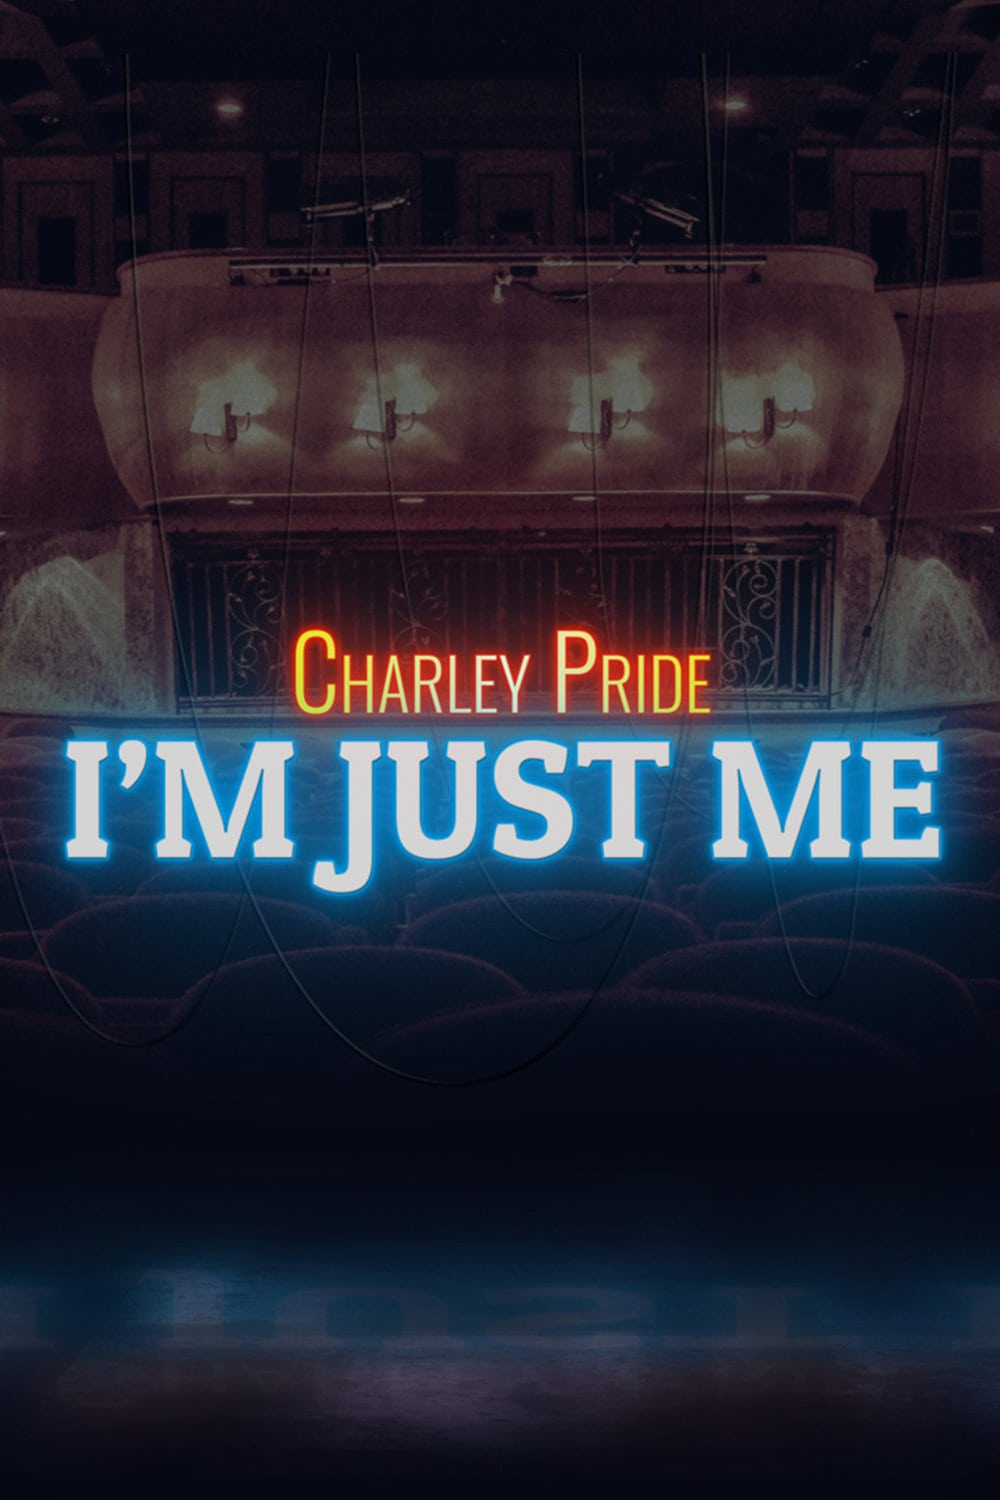 Charley Pride I'm Just Me Poster